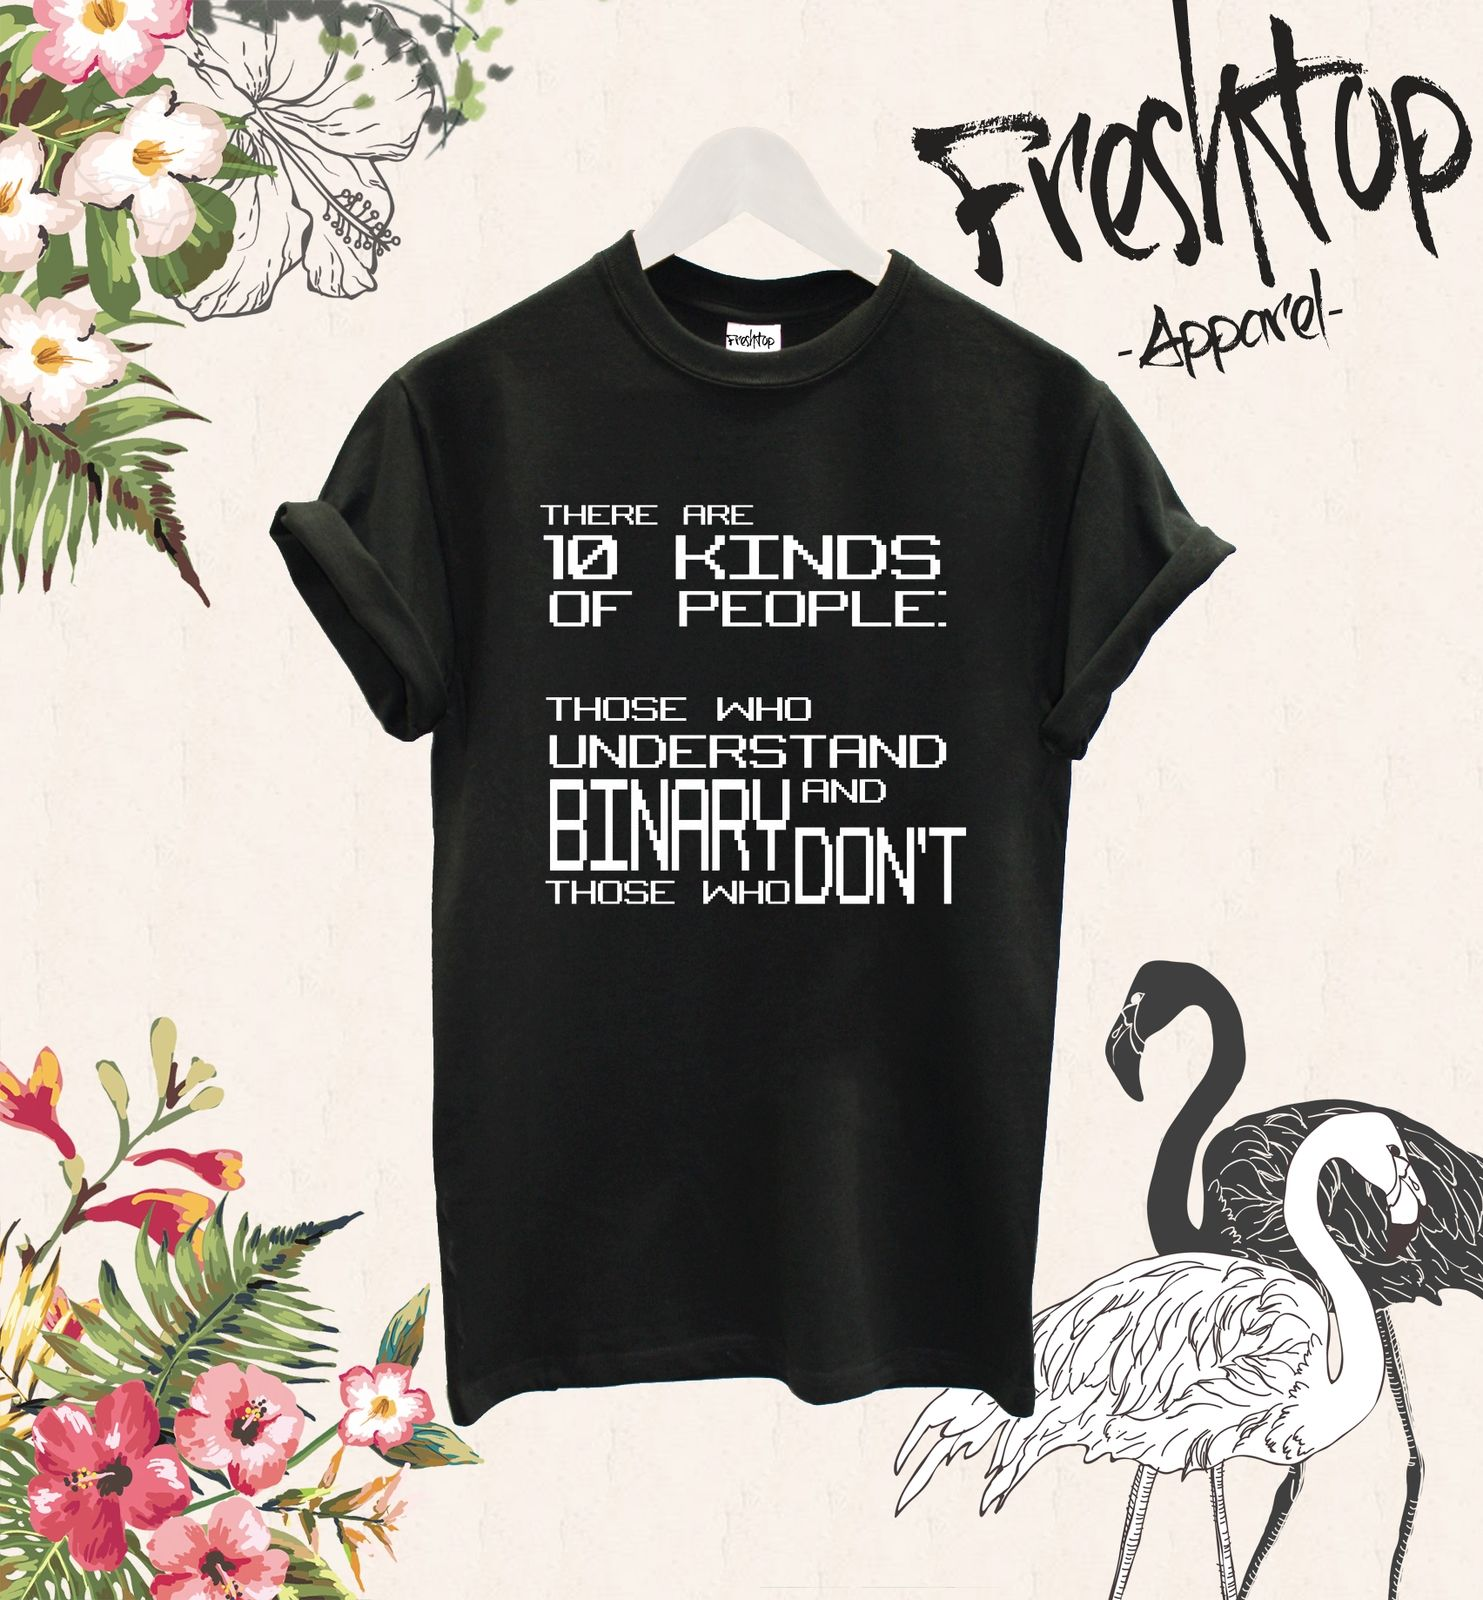 There Are 10 Kinds of People Those Who Understand Binary T Shirt PC Gamer Hacker for Man Hipster O-Neck Causal Cool T-Shirt